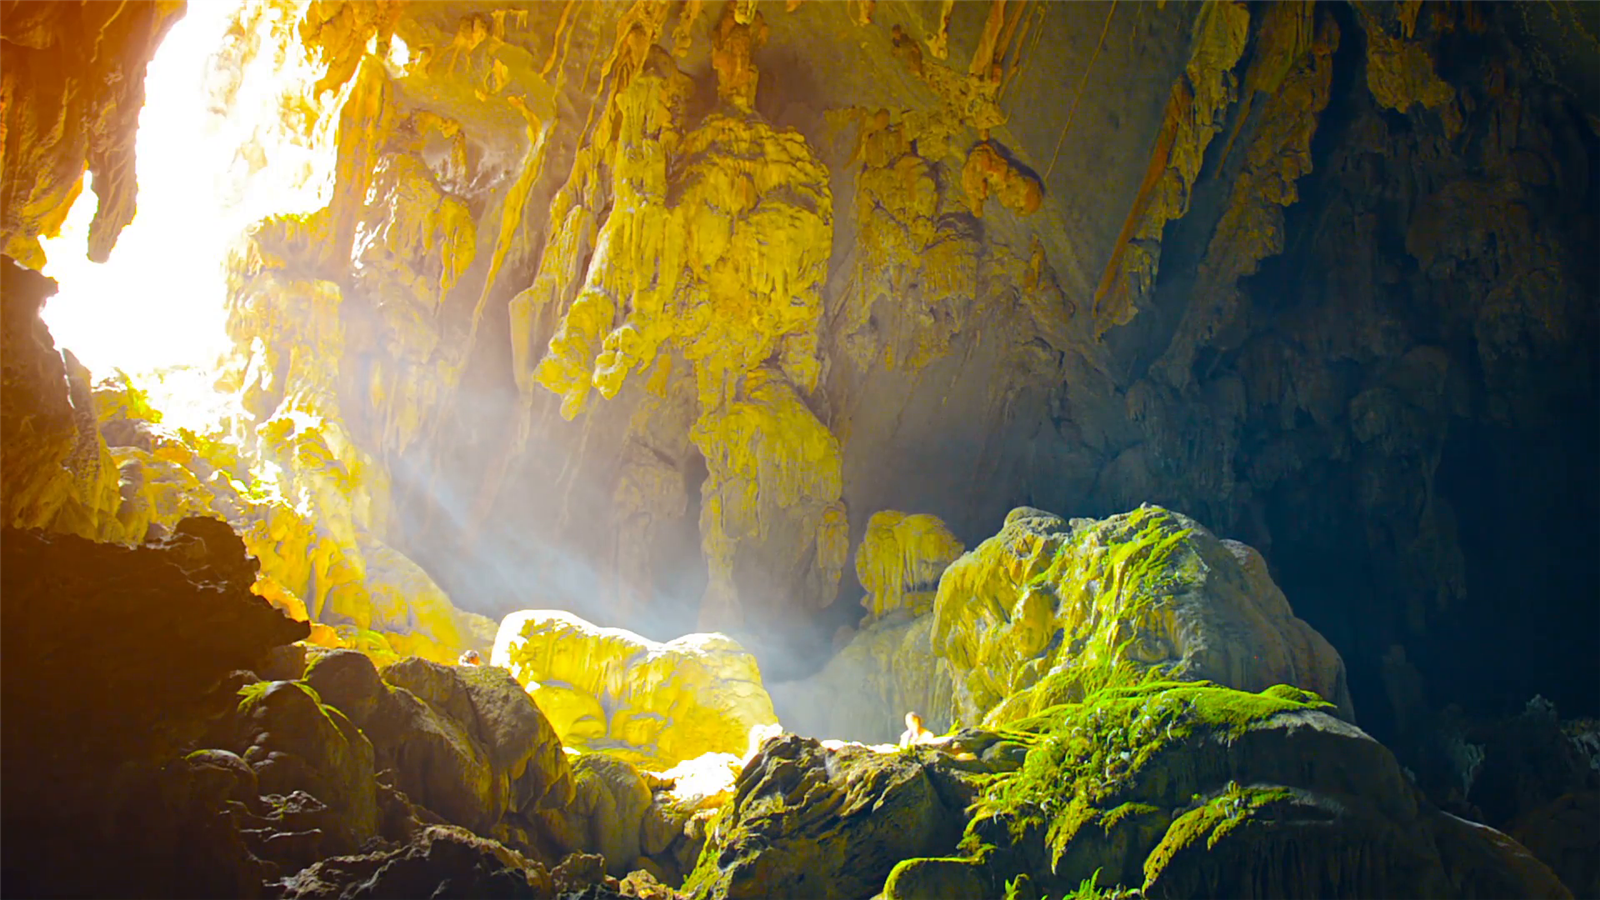 mouth-of-cave-at-blue-lagoon-in-vang-vieng-laos_vsgeanig5x__F0000